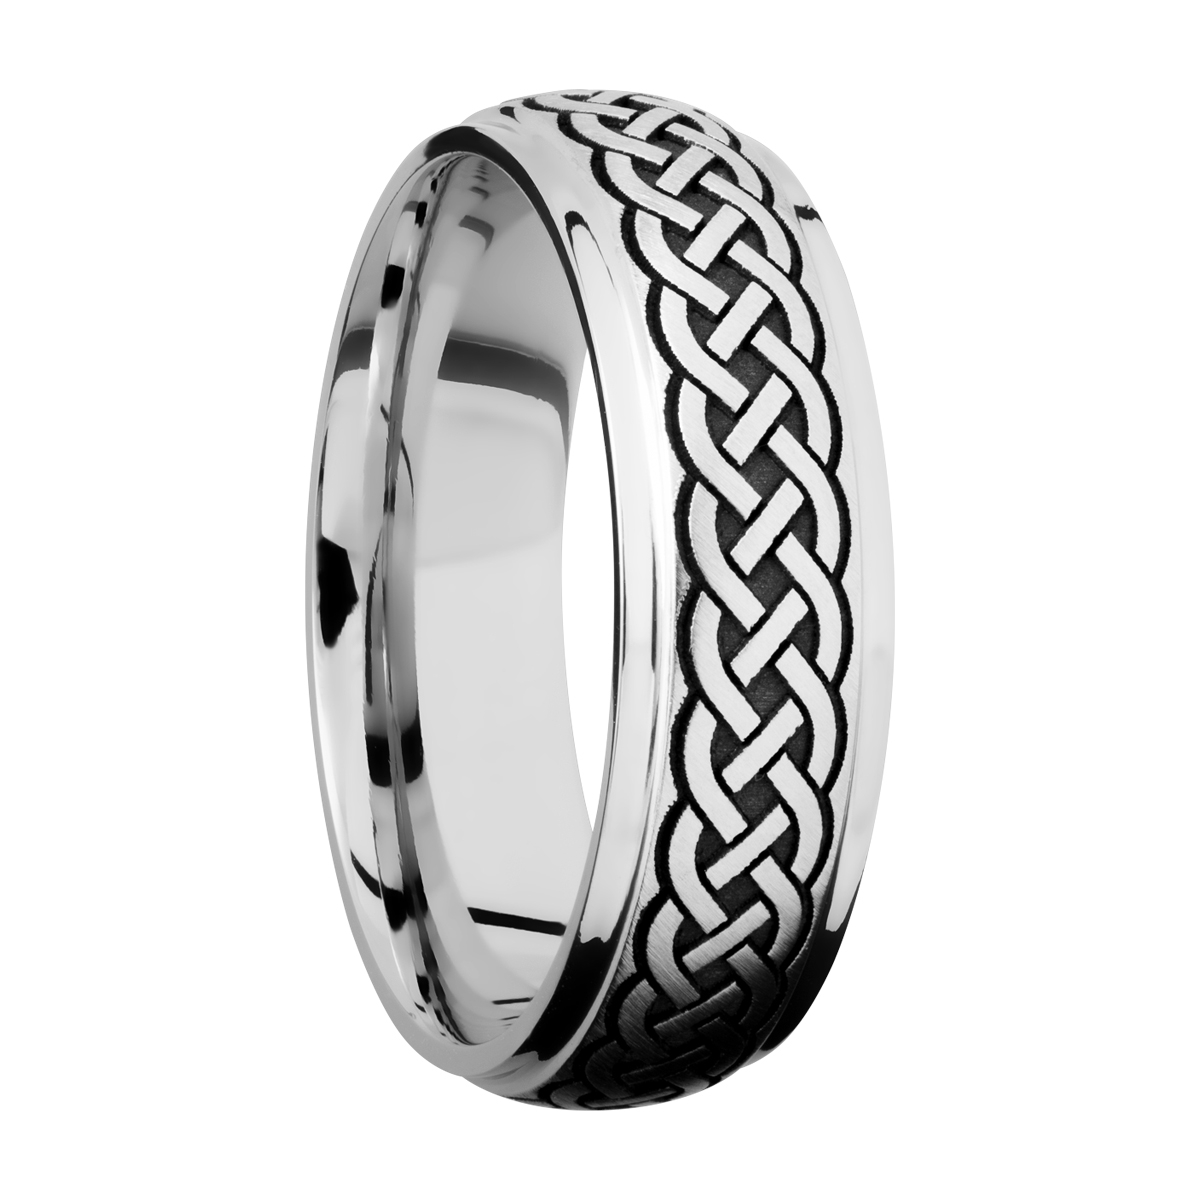 Lashbrook CC7DGE/LCVCELTIC9 ANGLE Cobalt Chrome Wedding Ring or Band Alternative View 1